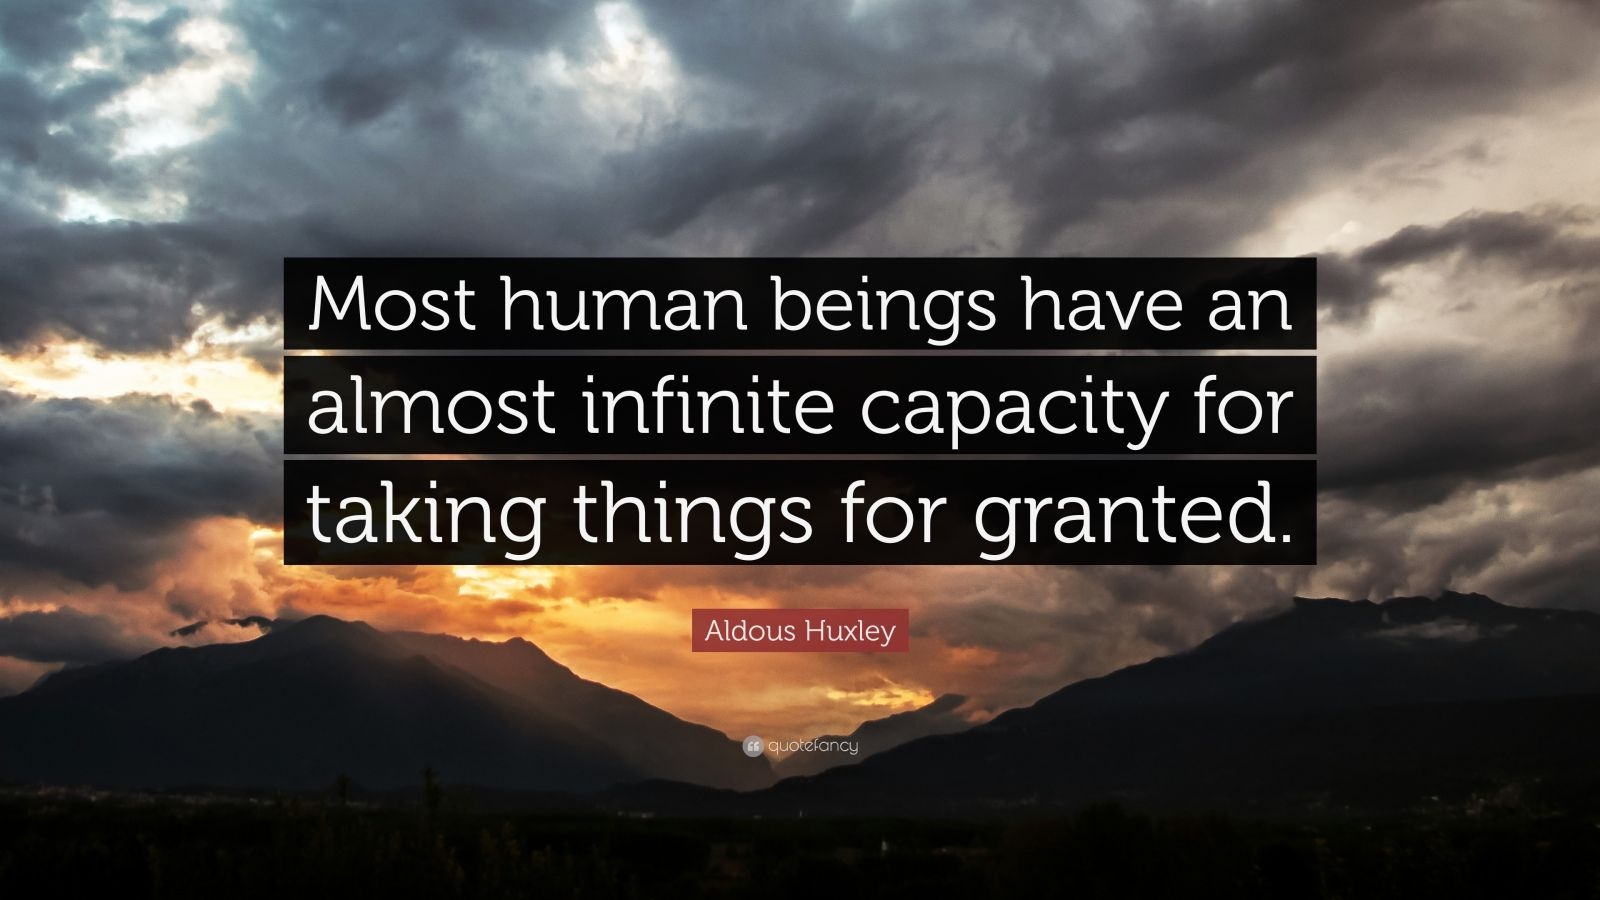 """Aldous Huxley Quote: """"Most human beings have an almost infinite capacity for taking things for granted."""""""